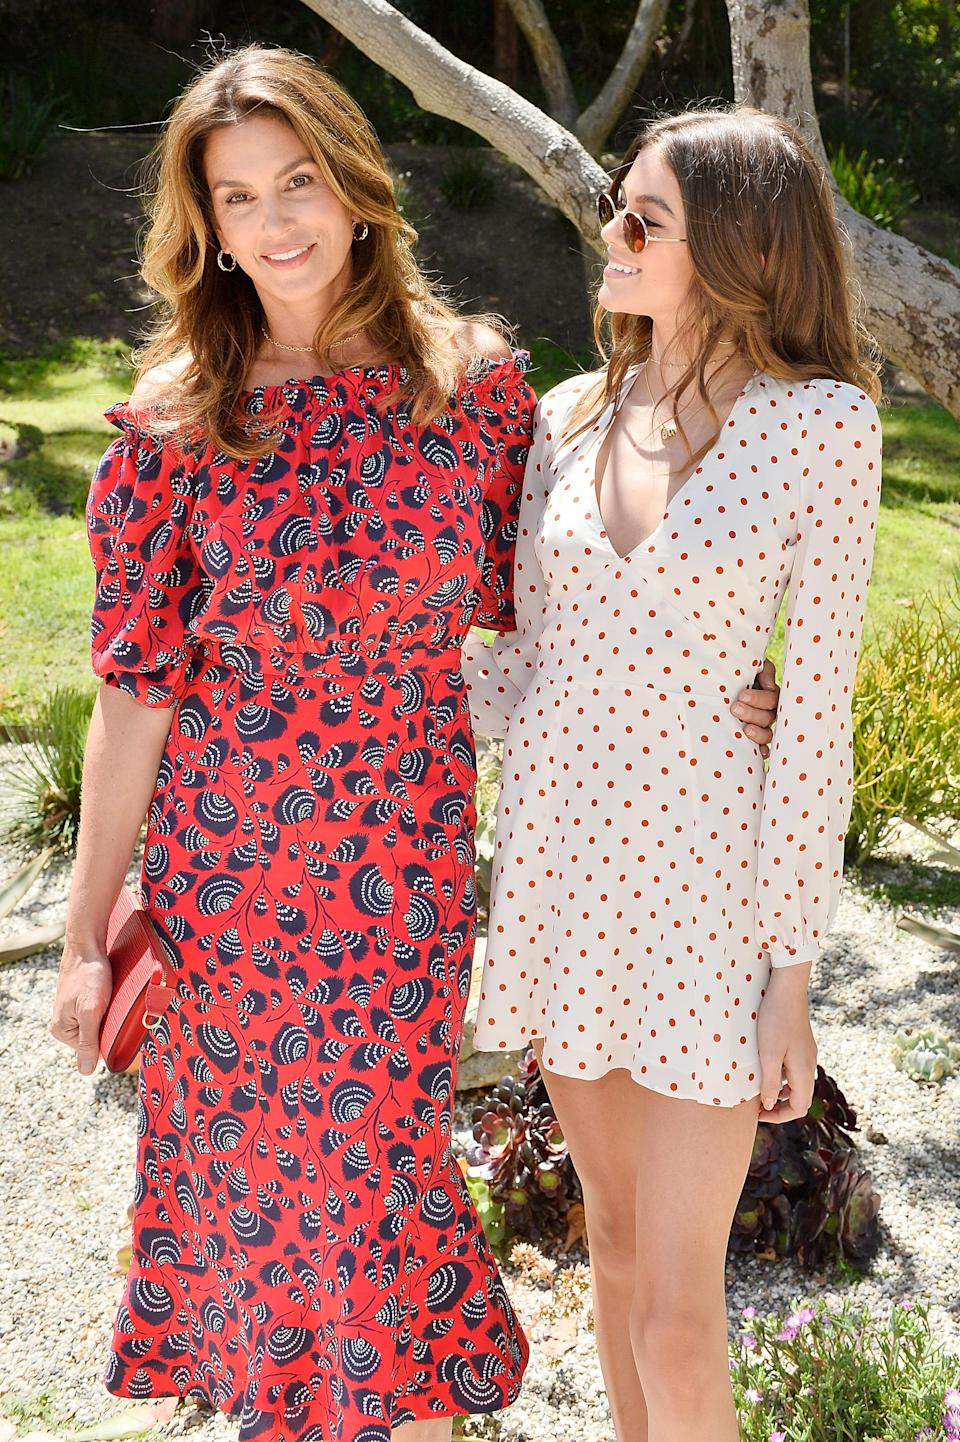 Cindy Crawford and Kaia Gerber host Best Buddies Mother's Day Brunch in Malibu, CA sponsored by David Yurman on May 13, 2017 in Malibu, California. (Photo: Getty Images)